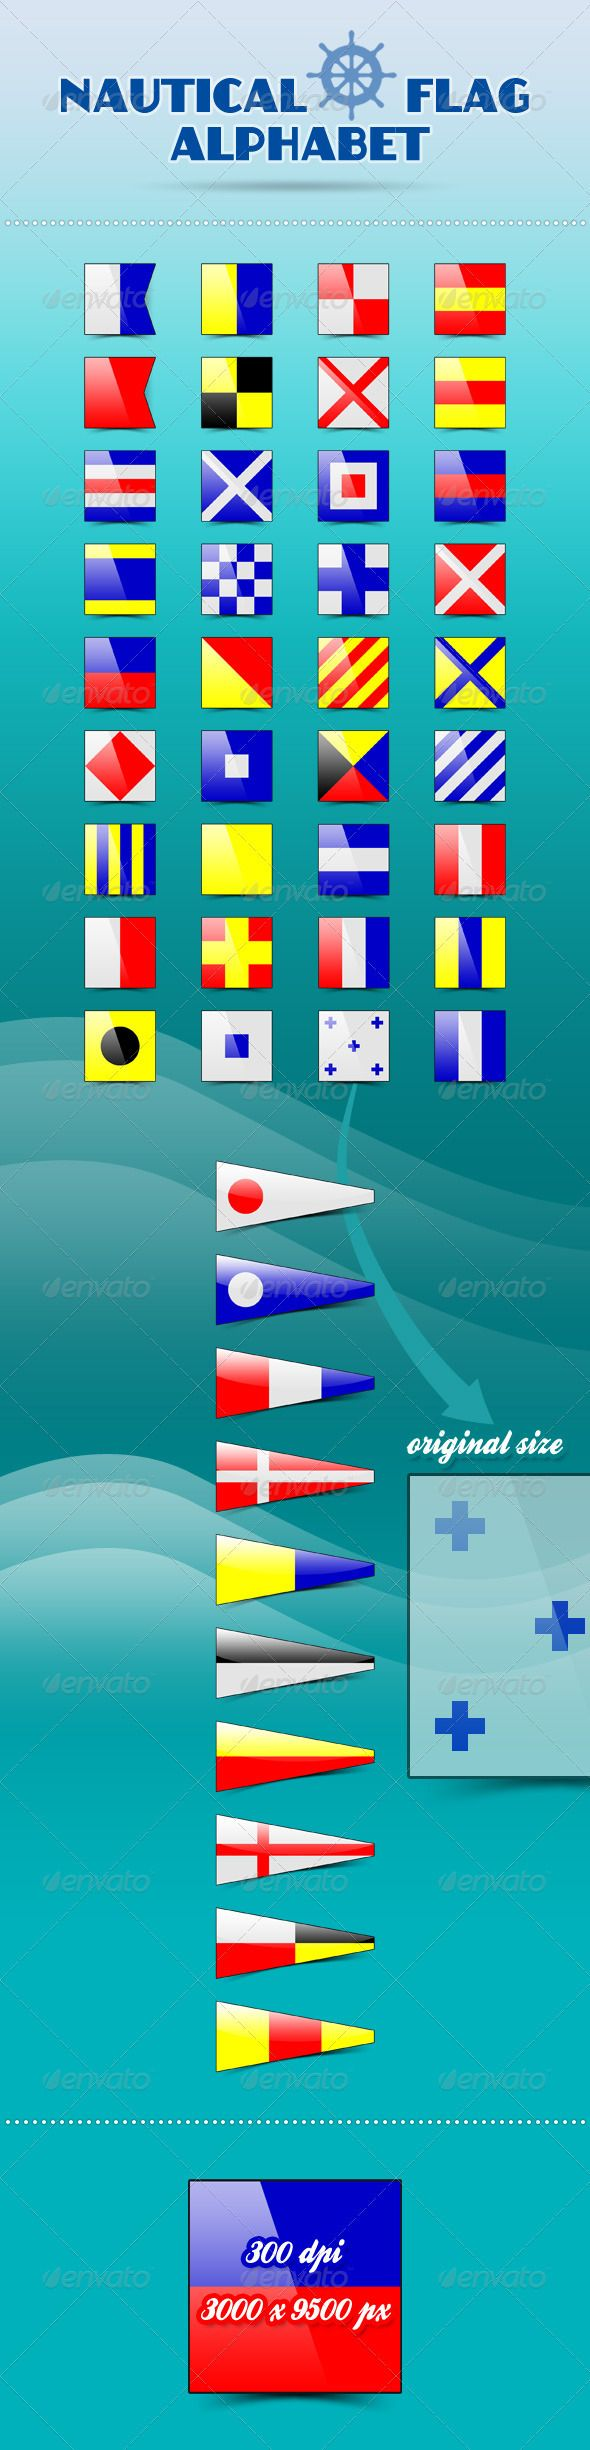 #Nautical Flag Alphabet - Decorative Symbols #Decorative Download here: https://graphicriver.net/item/nautical-flag-alphabet/3004480?ref=alena994